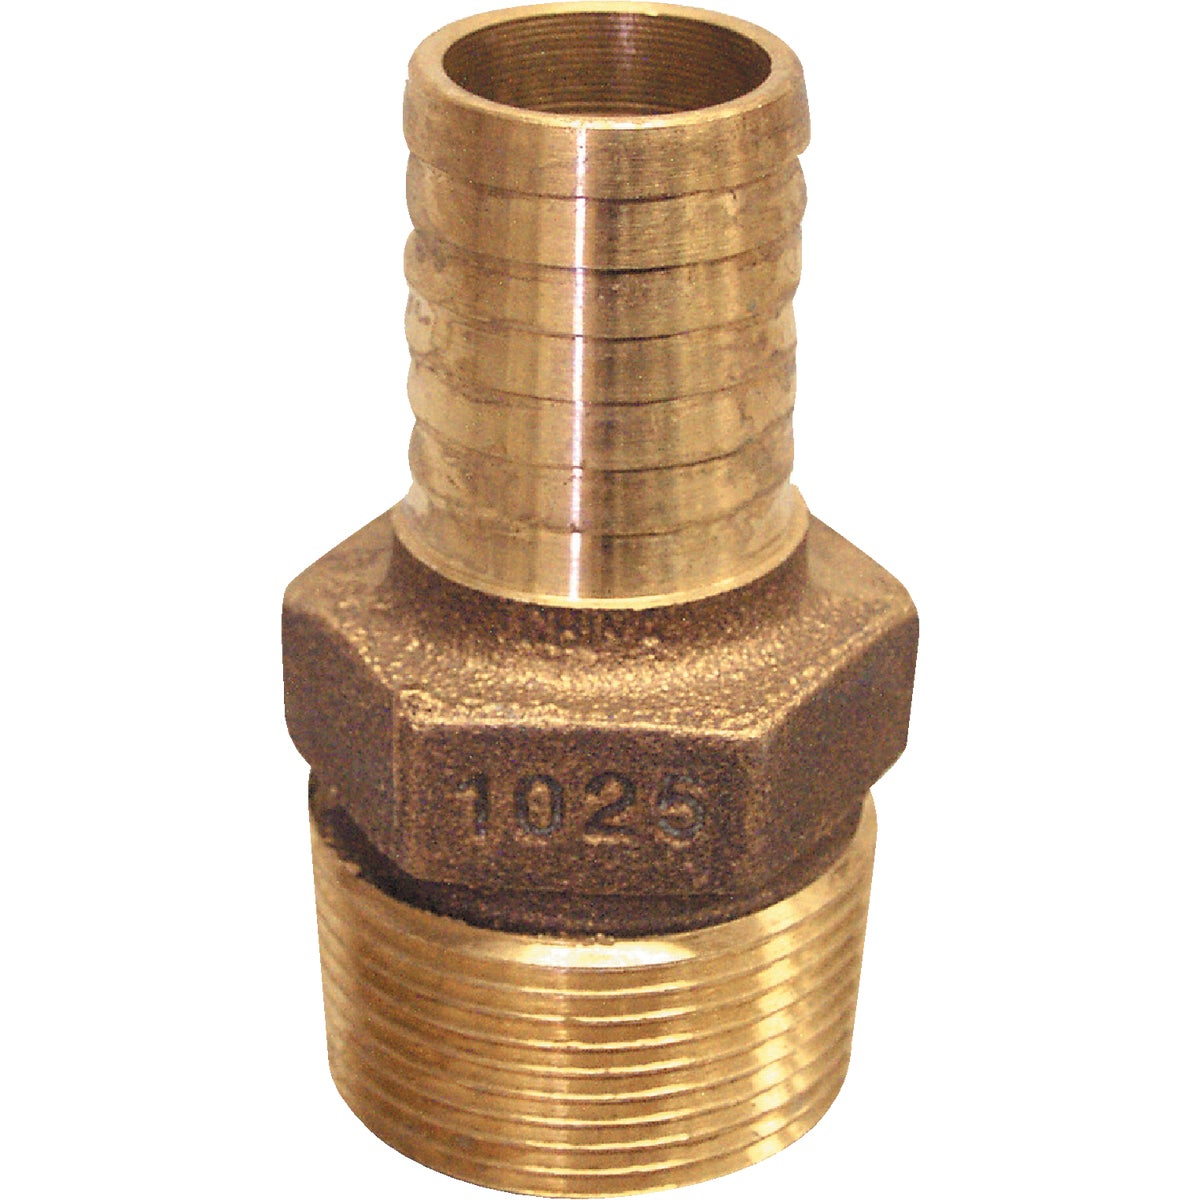 "1-1/4""MIPX1""INSERT - RBMANL1025 by Merrill Mfg"